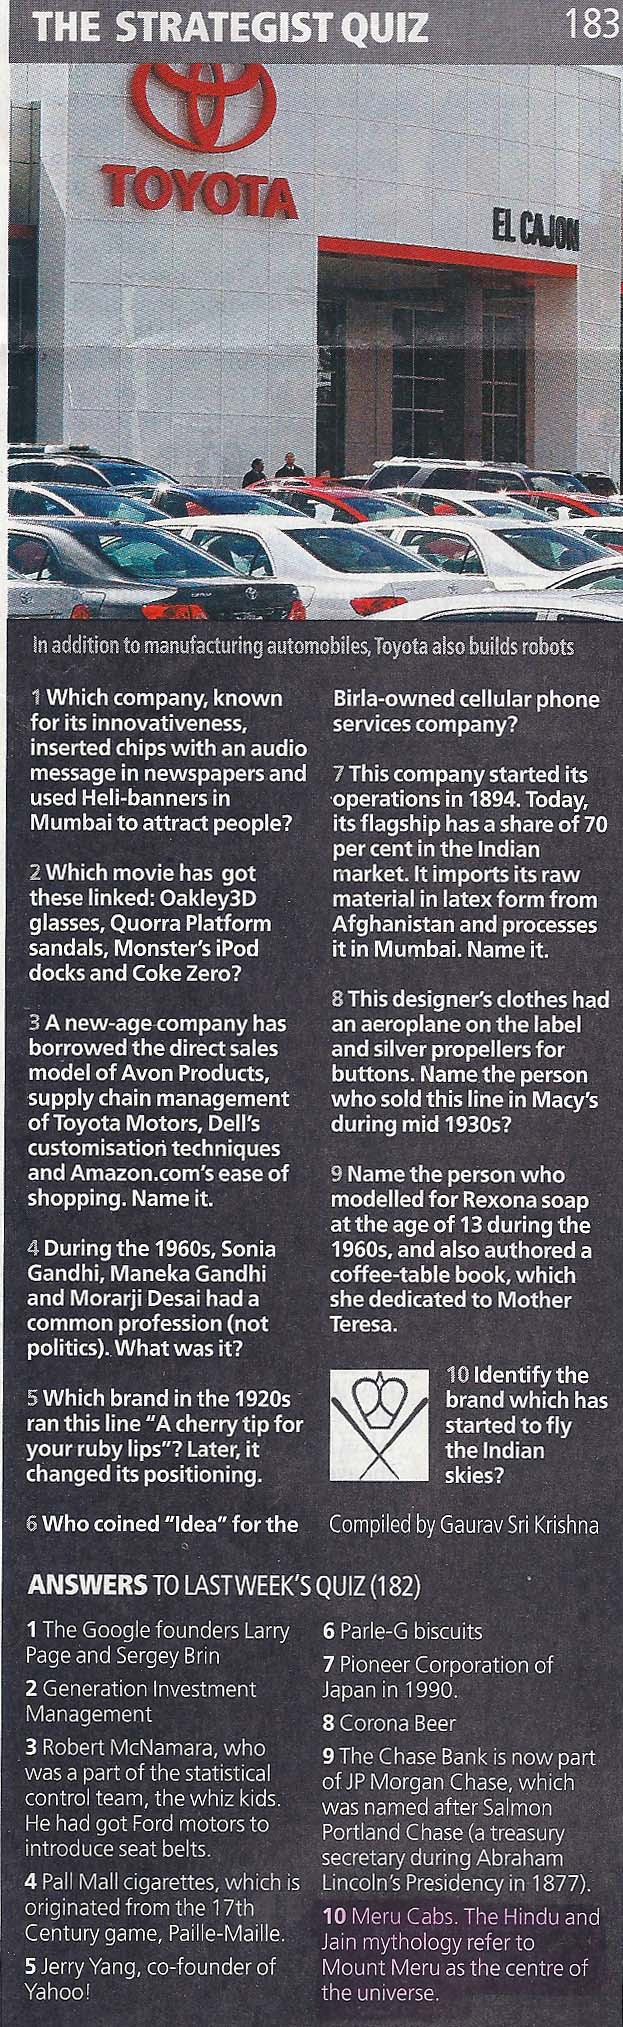 Business Standard, 10th Jan 10, P-2.jpg